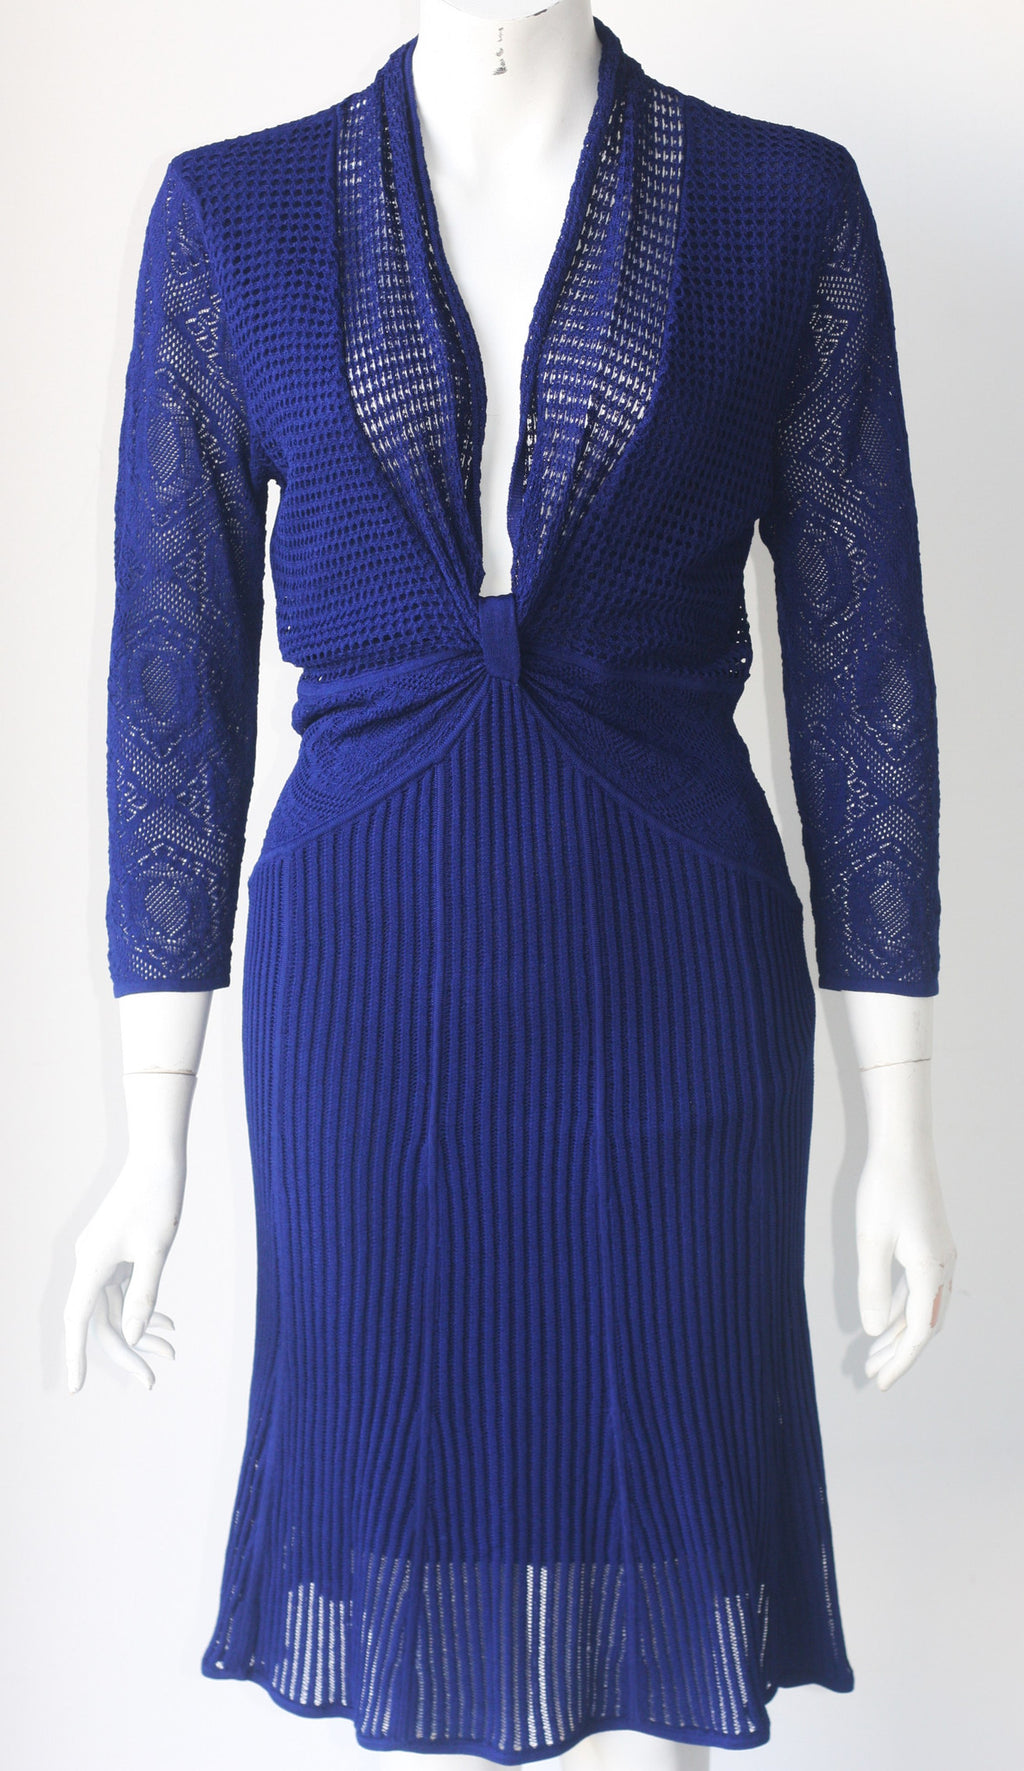 Catherine Malandrino Pointelle Royal Blue Open Knit Dress - Joyce's Closet  - 1